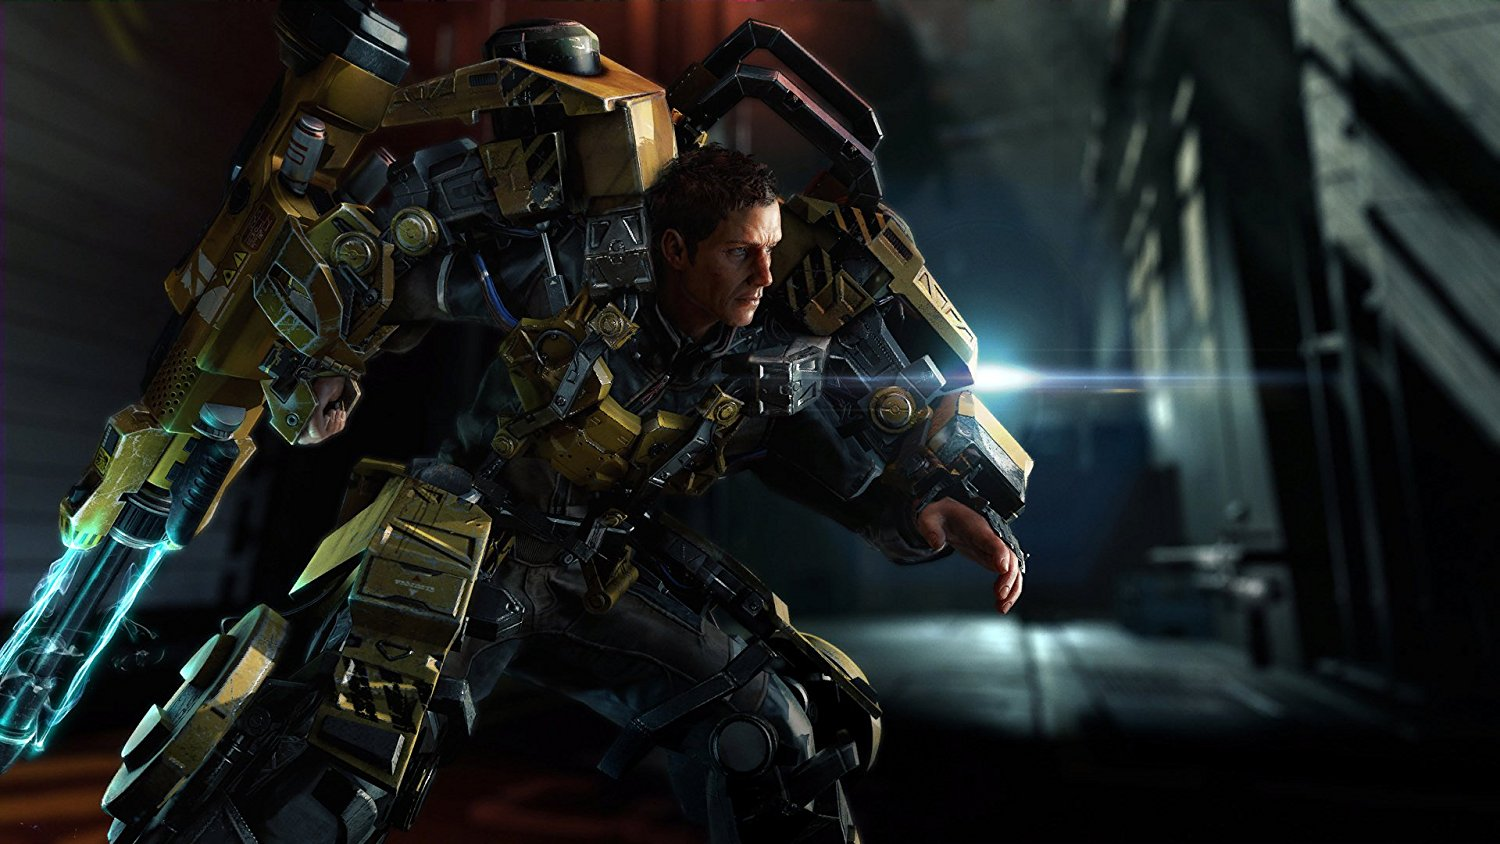 The Surge image 1